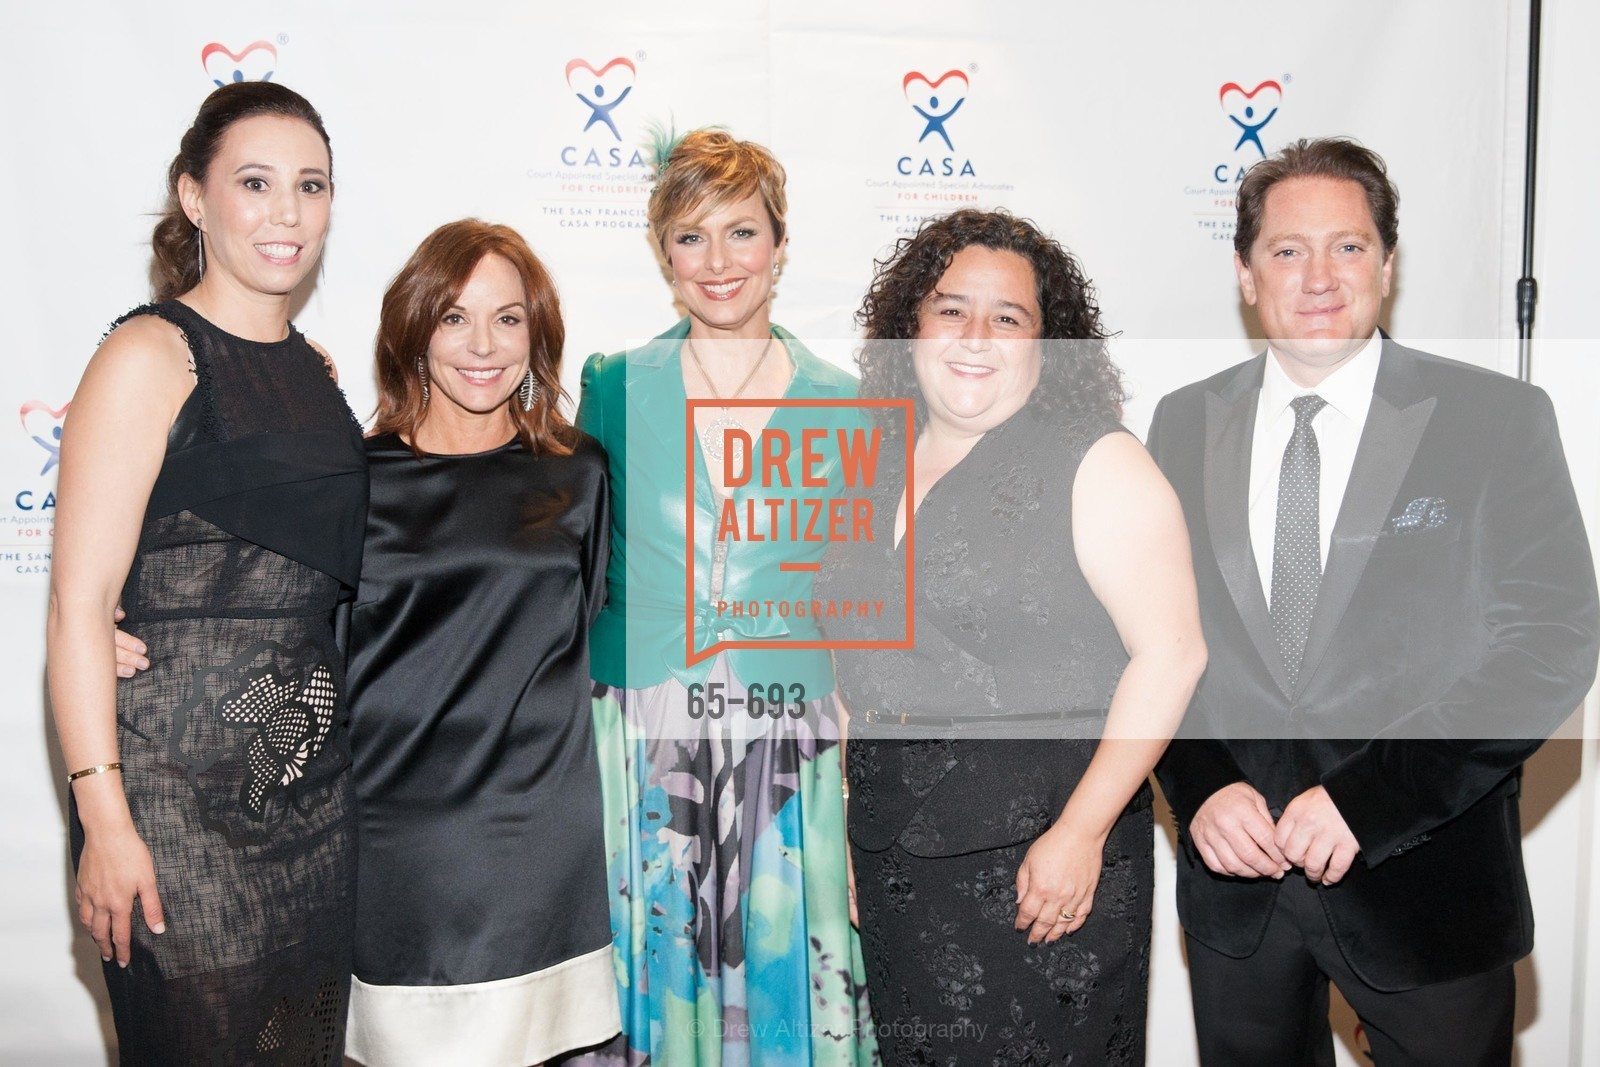 Allison Eisenhardt, Amanda Clarke, Melora Hardin, Renee Espinoza, Liam Mayclem, SFCASA'S Fostering Change Gala:  Room Without A Roof, US, May 2nd, 2015,Drew Altizer, Drew Altizer Photography, full-service agency, private events, San Francisco photographer, photographer california